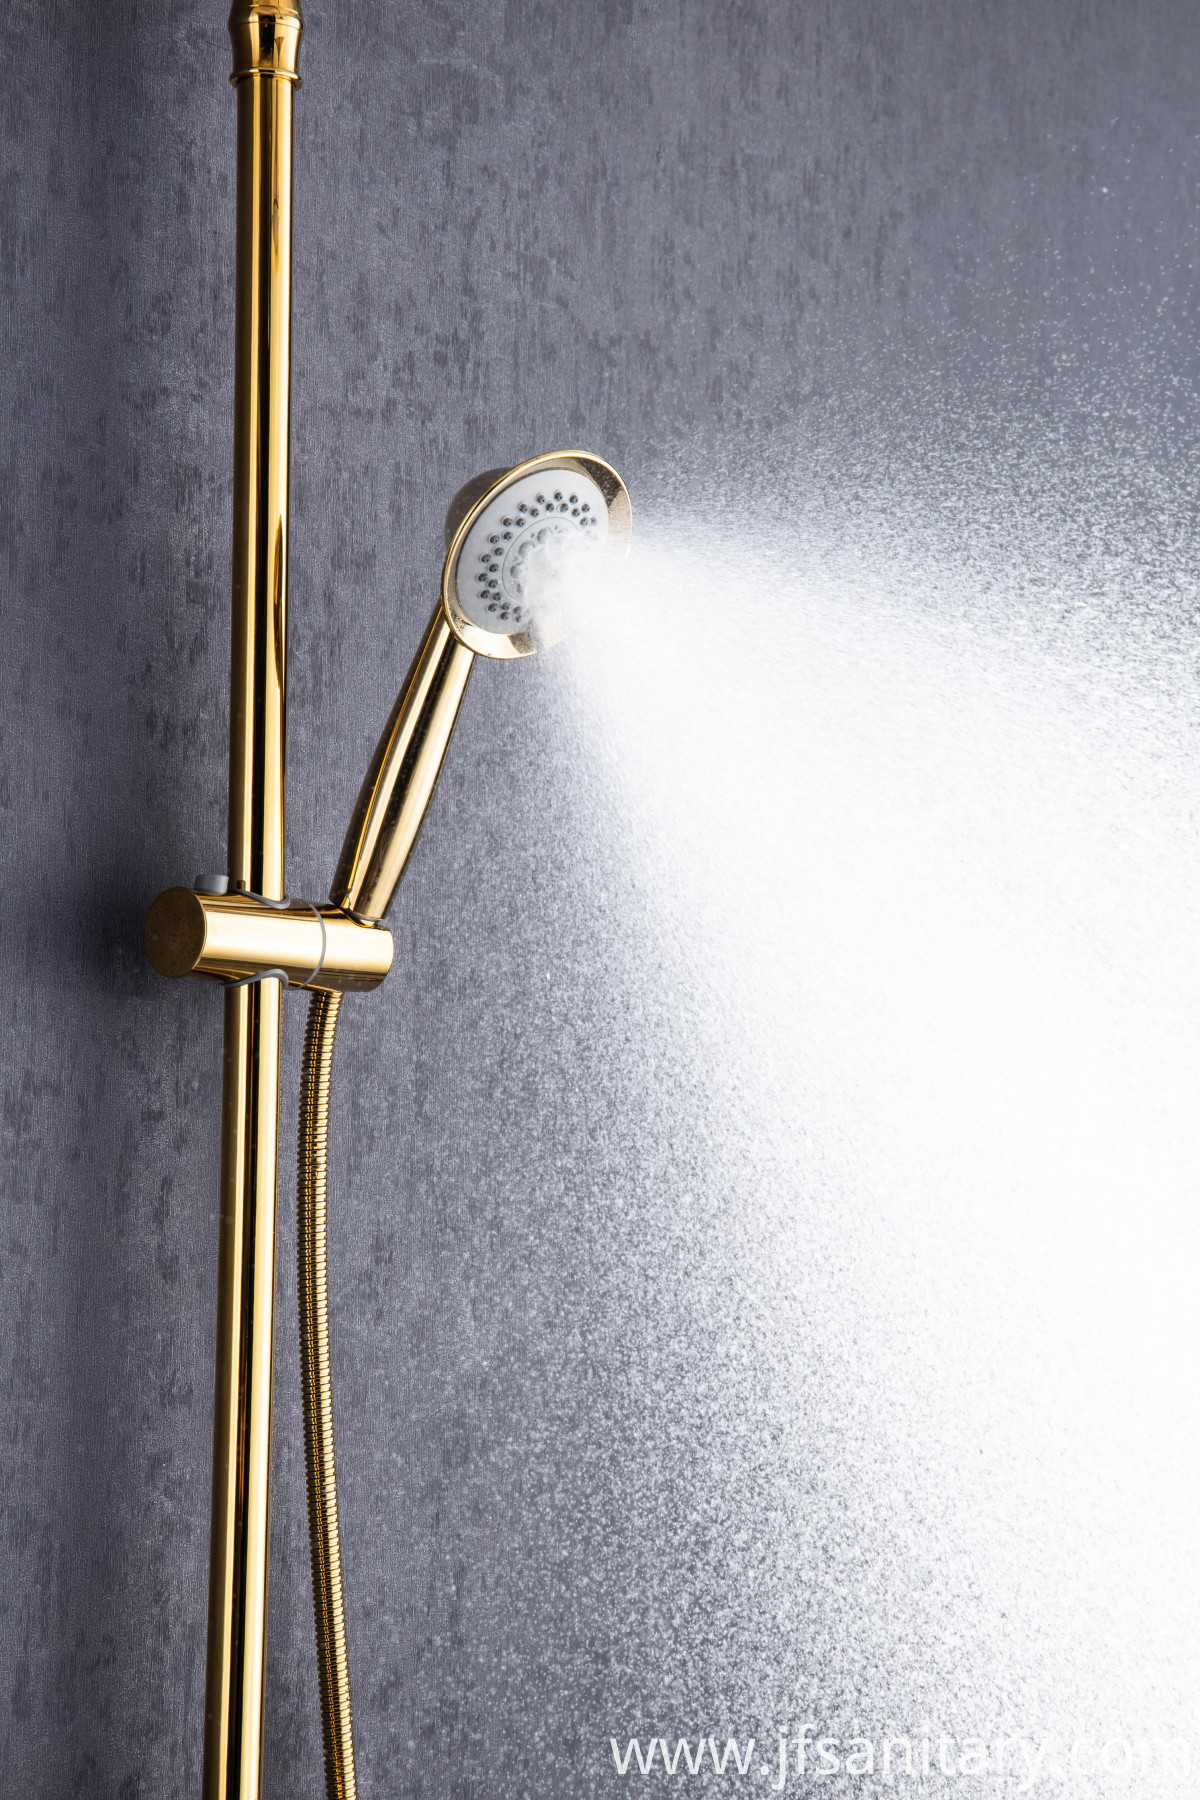 dual shower head with handheld